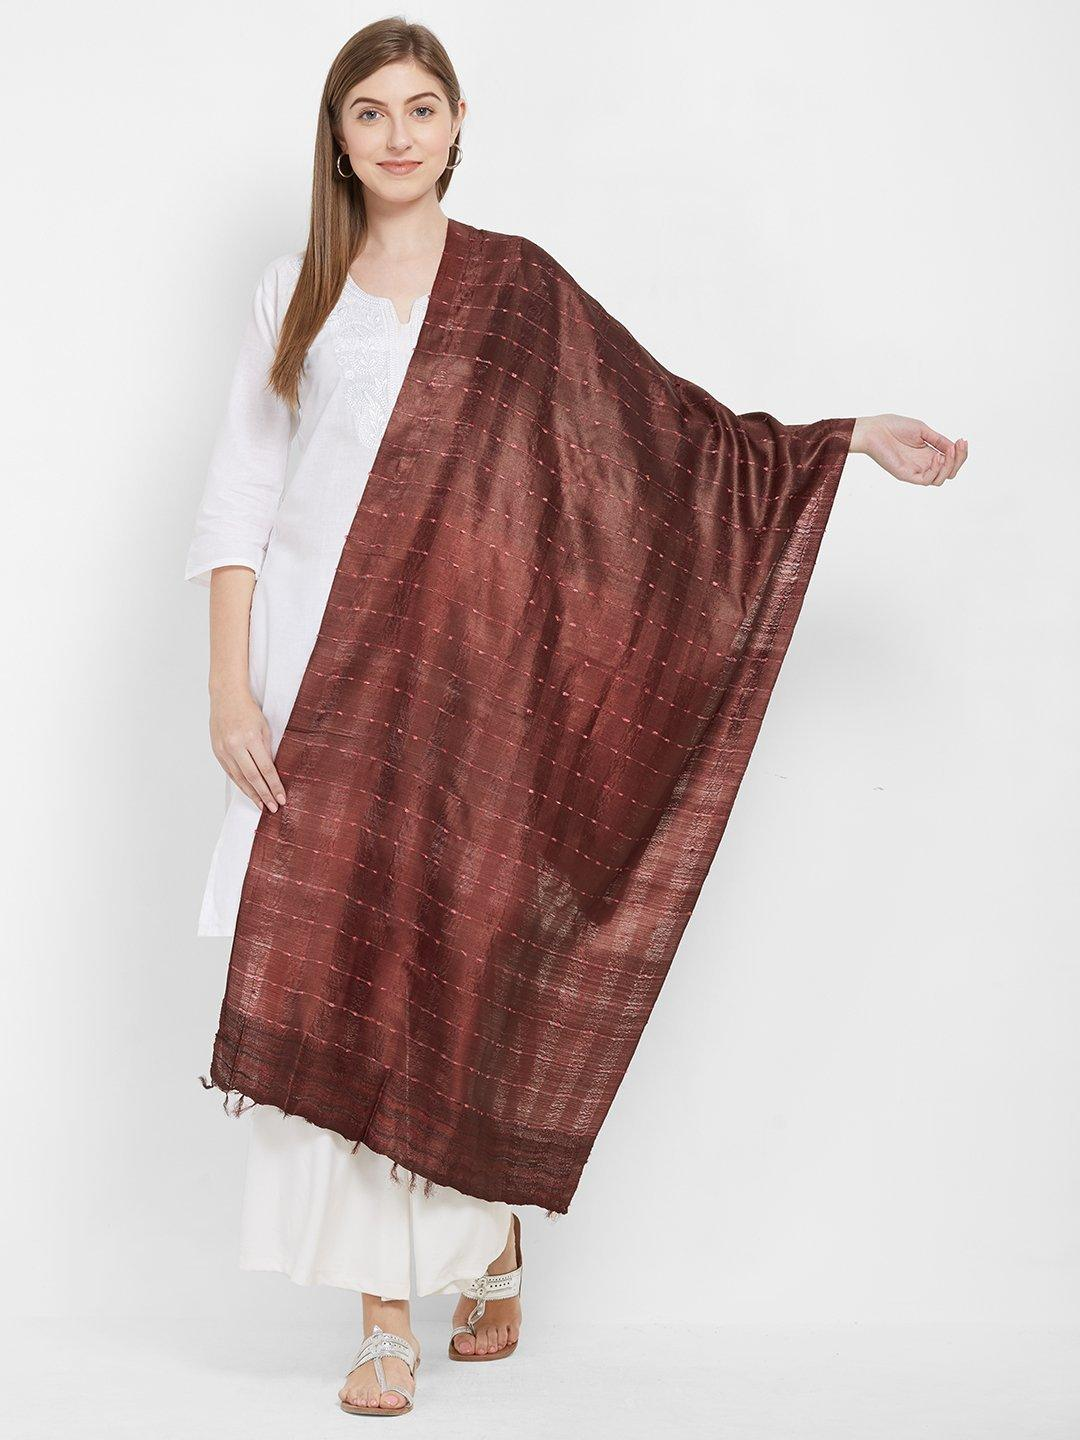 CraftsCollection.in -Maroon Tussar Silk Stole